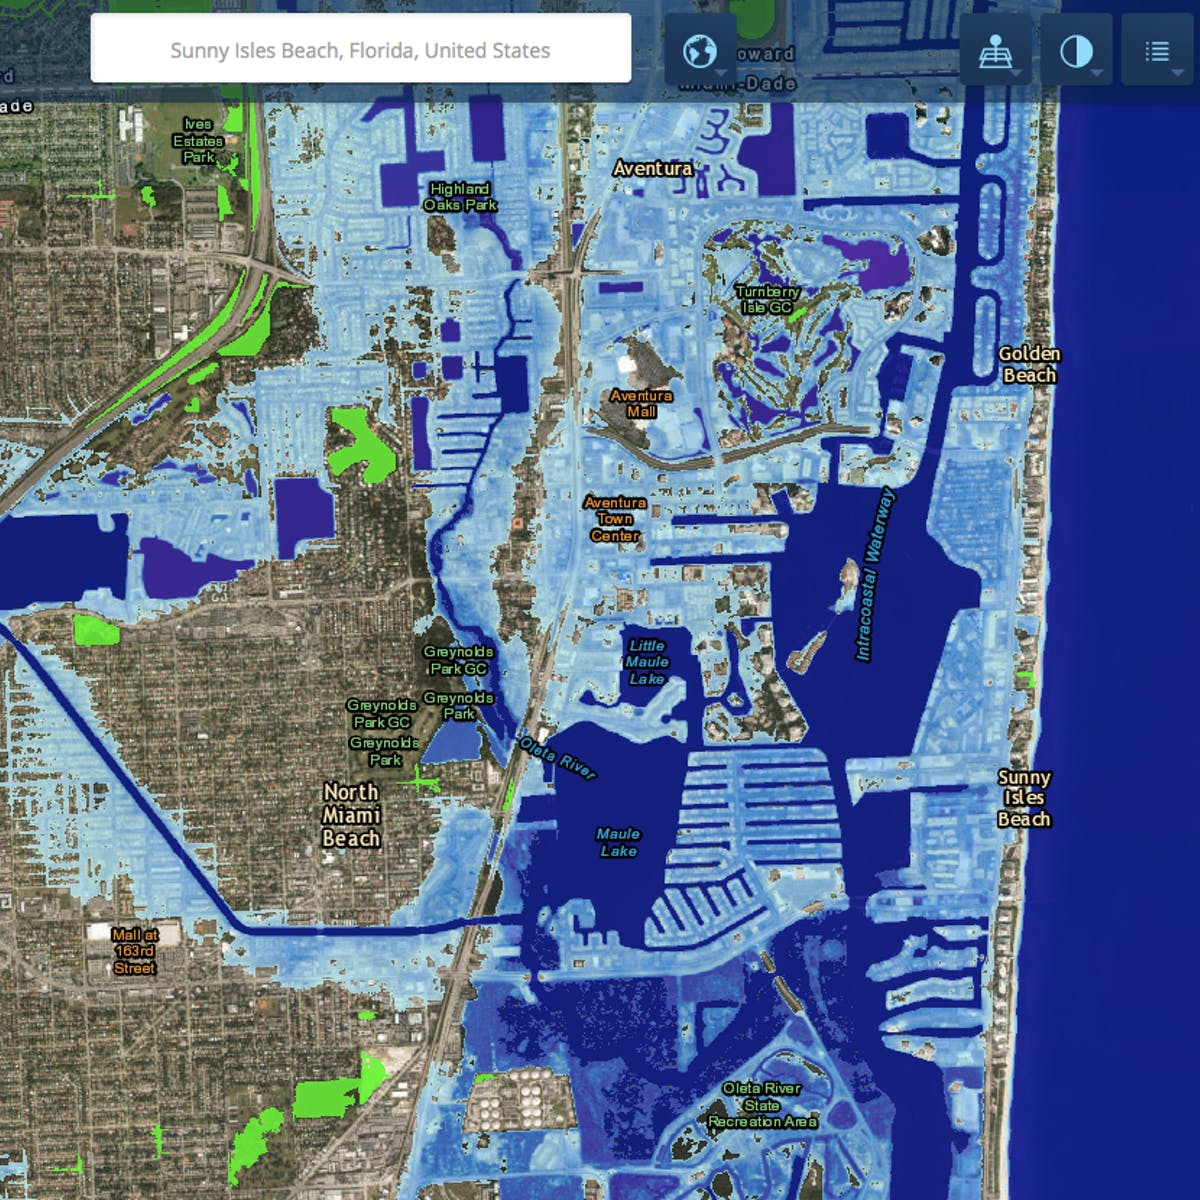 projected sea level rise2050 map ireland